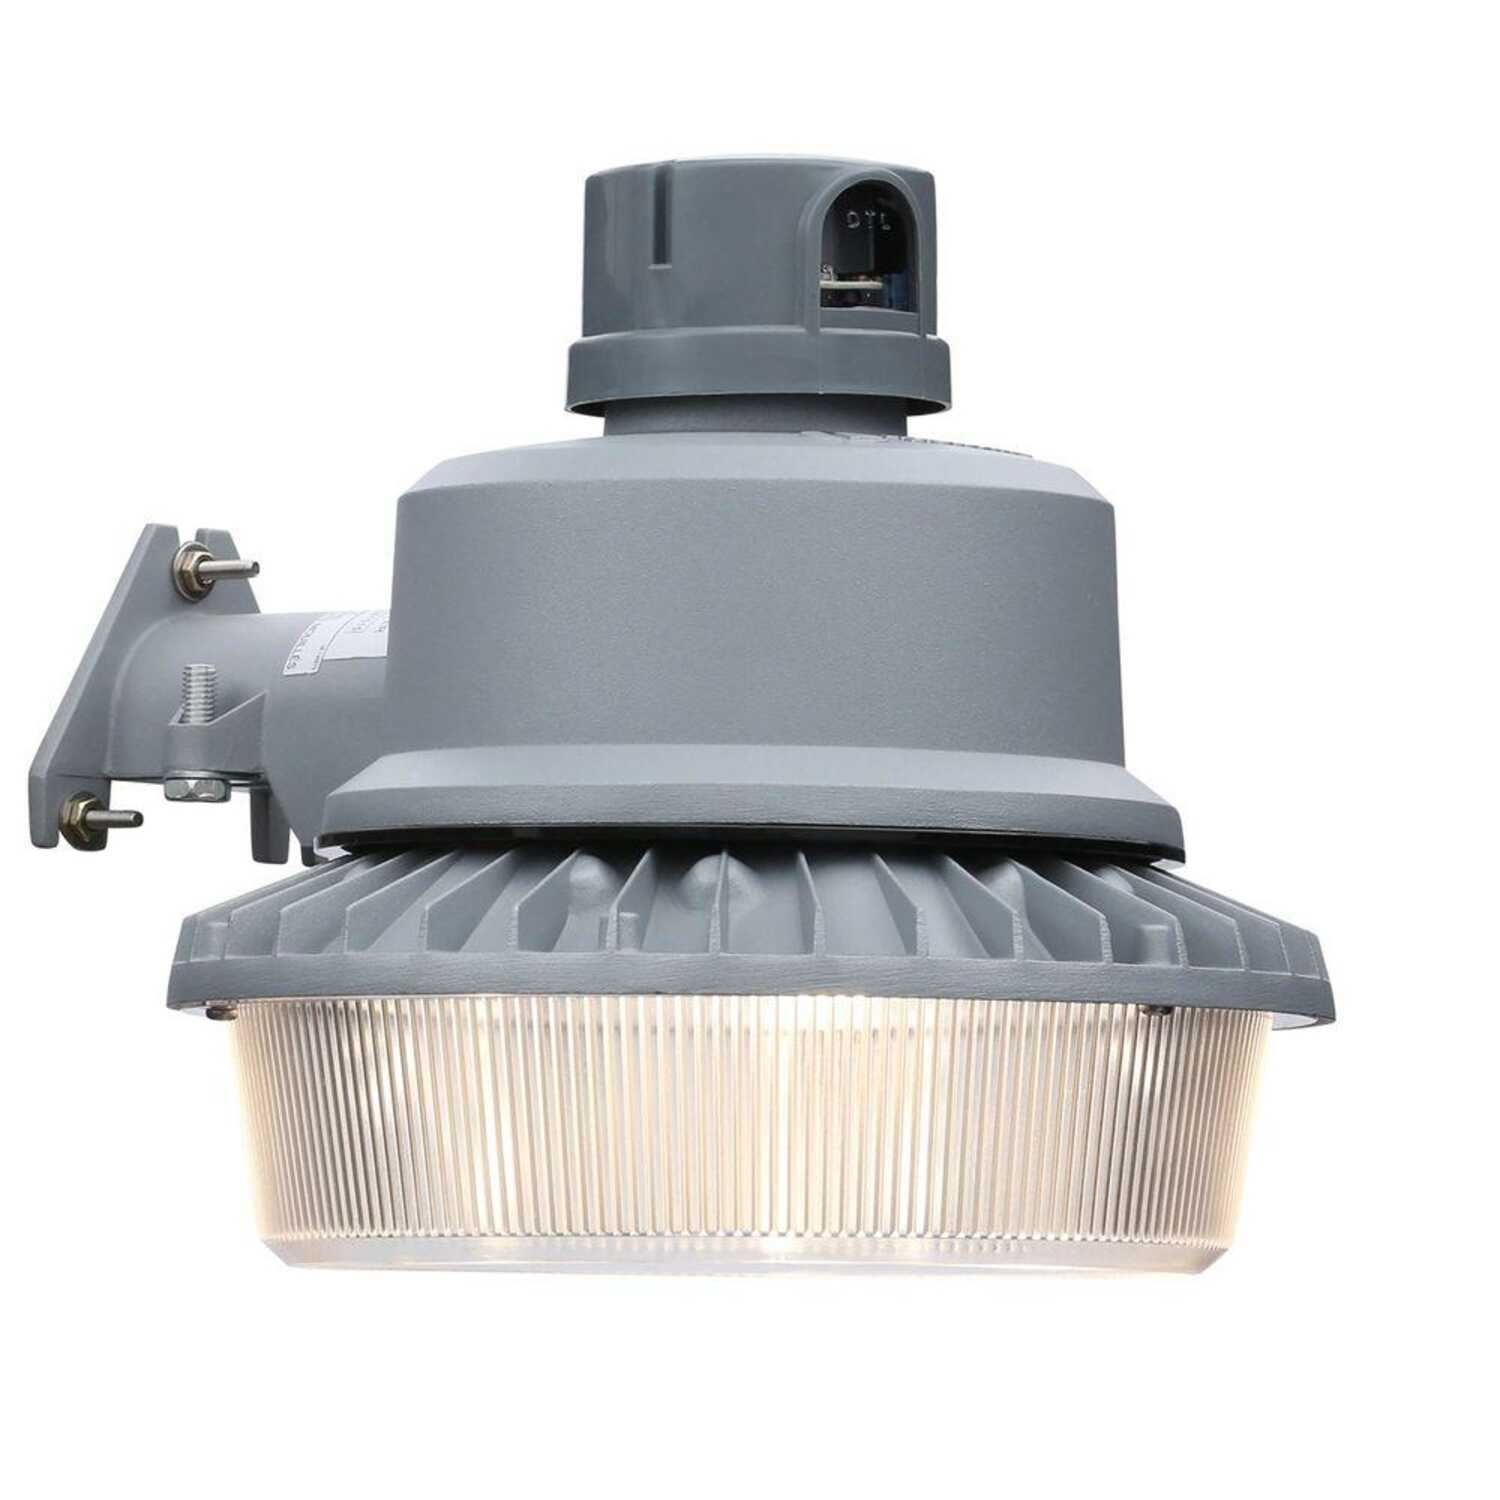 Lithonia Lighting  Dusk to Dawn  Hardwired  Gray  Area Light  LED